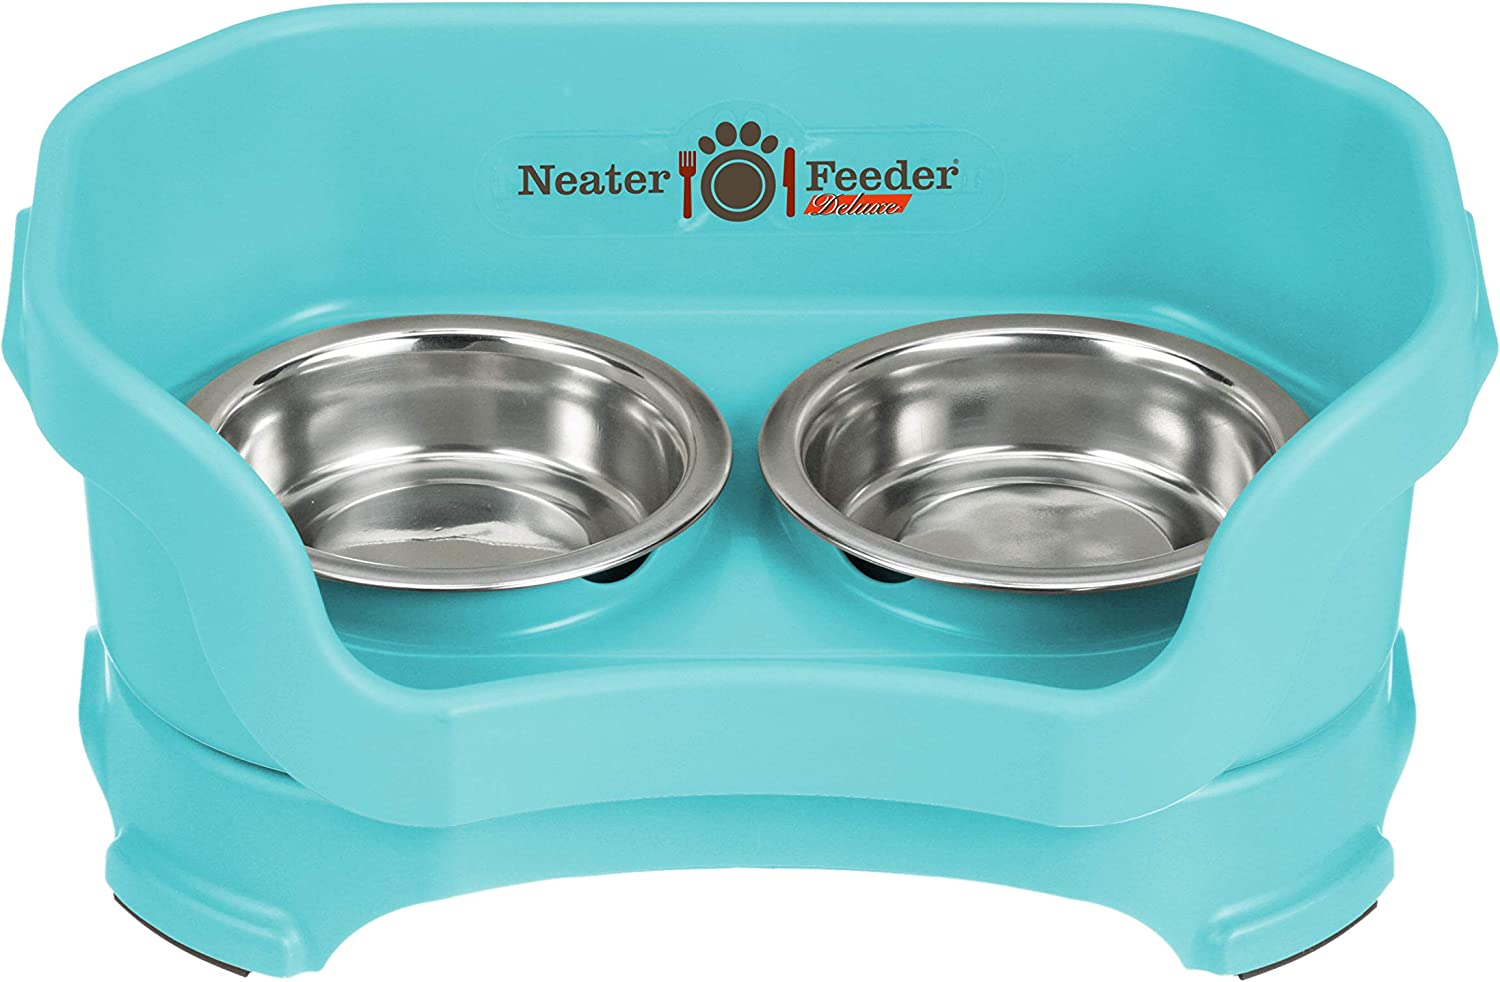 Neater Feeder Deluxe Small Dog (Aquamarine) - The Mess Proof Elevated Bowls No Slip Non Tip Double Diner Stainless Steel Food Dish with Stand